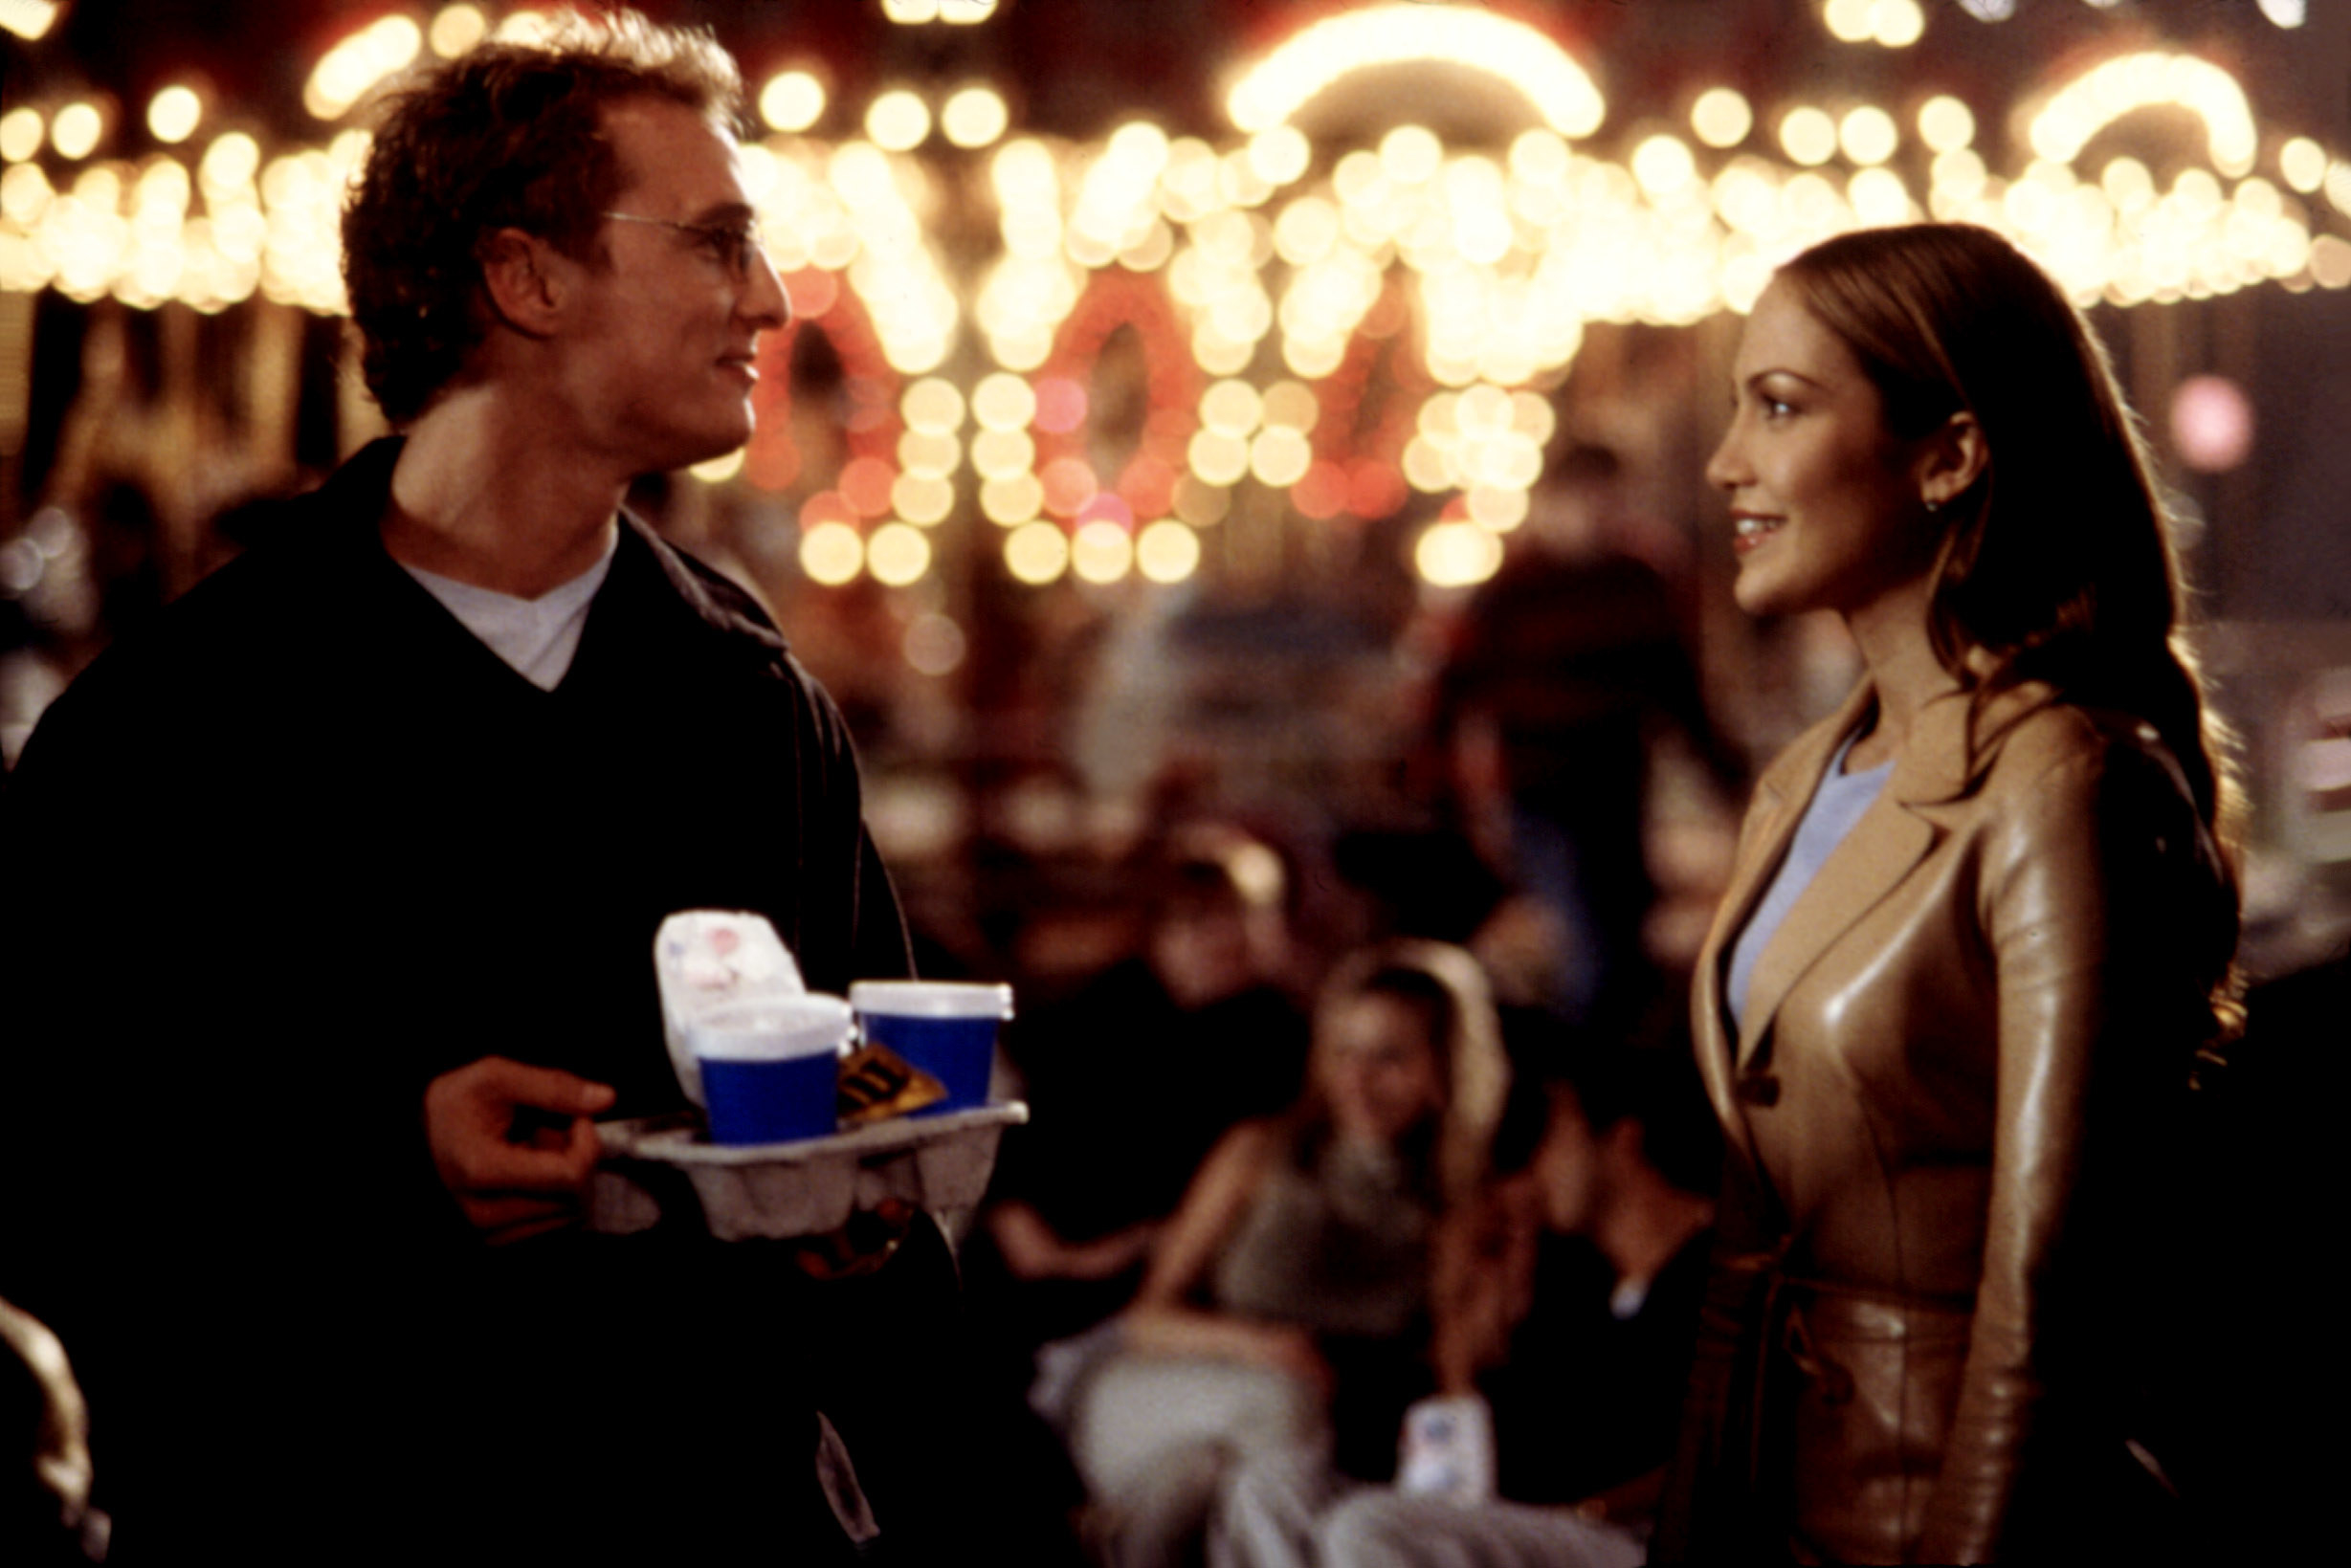 Matthew McConaughey and Jennifer Lopez in the movie the wedding planner